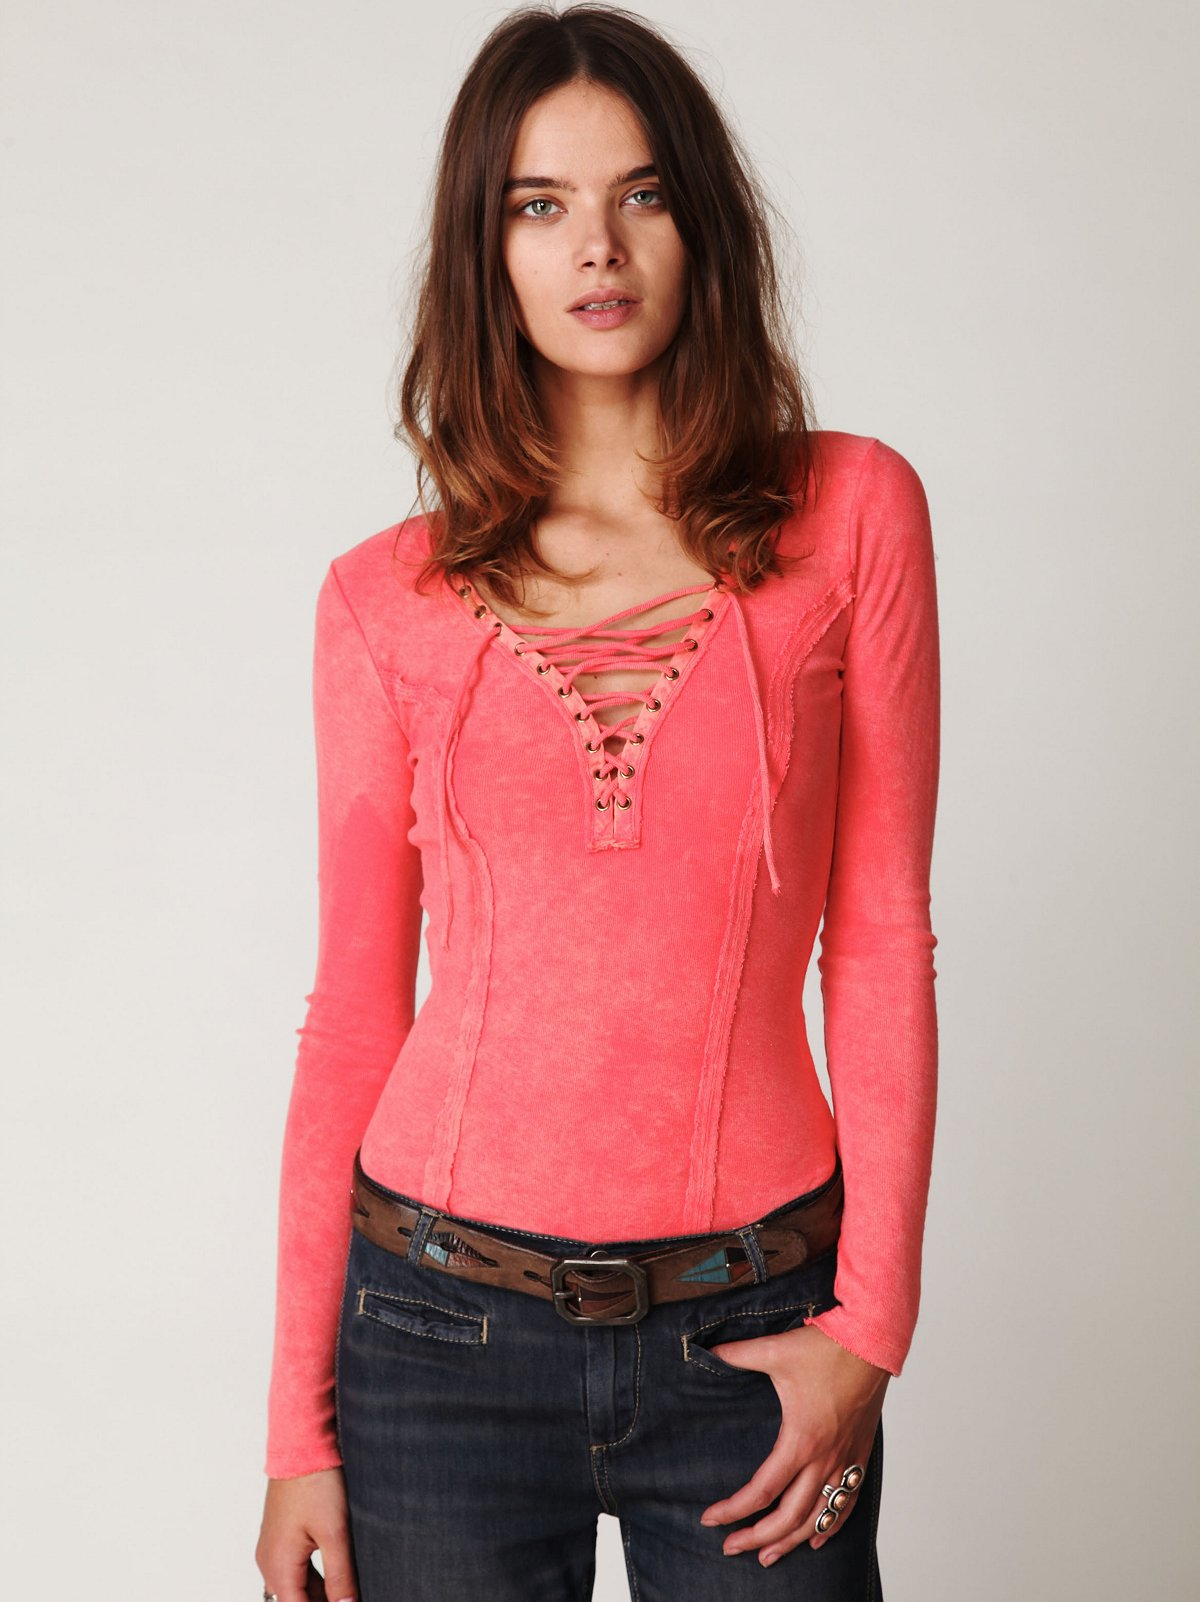 Chilton Lace Up Long Sleeve Top